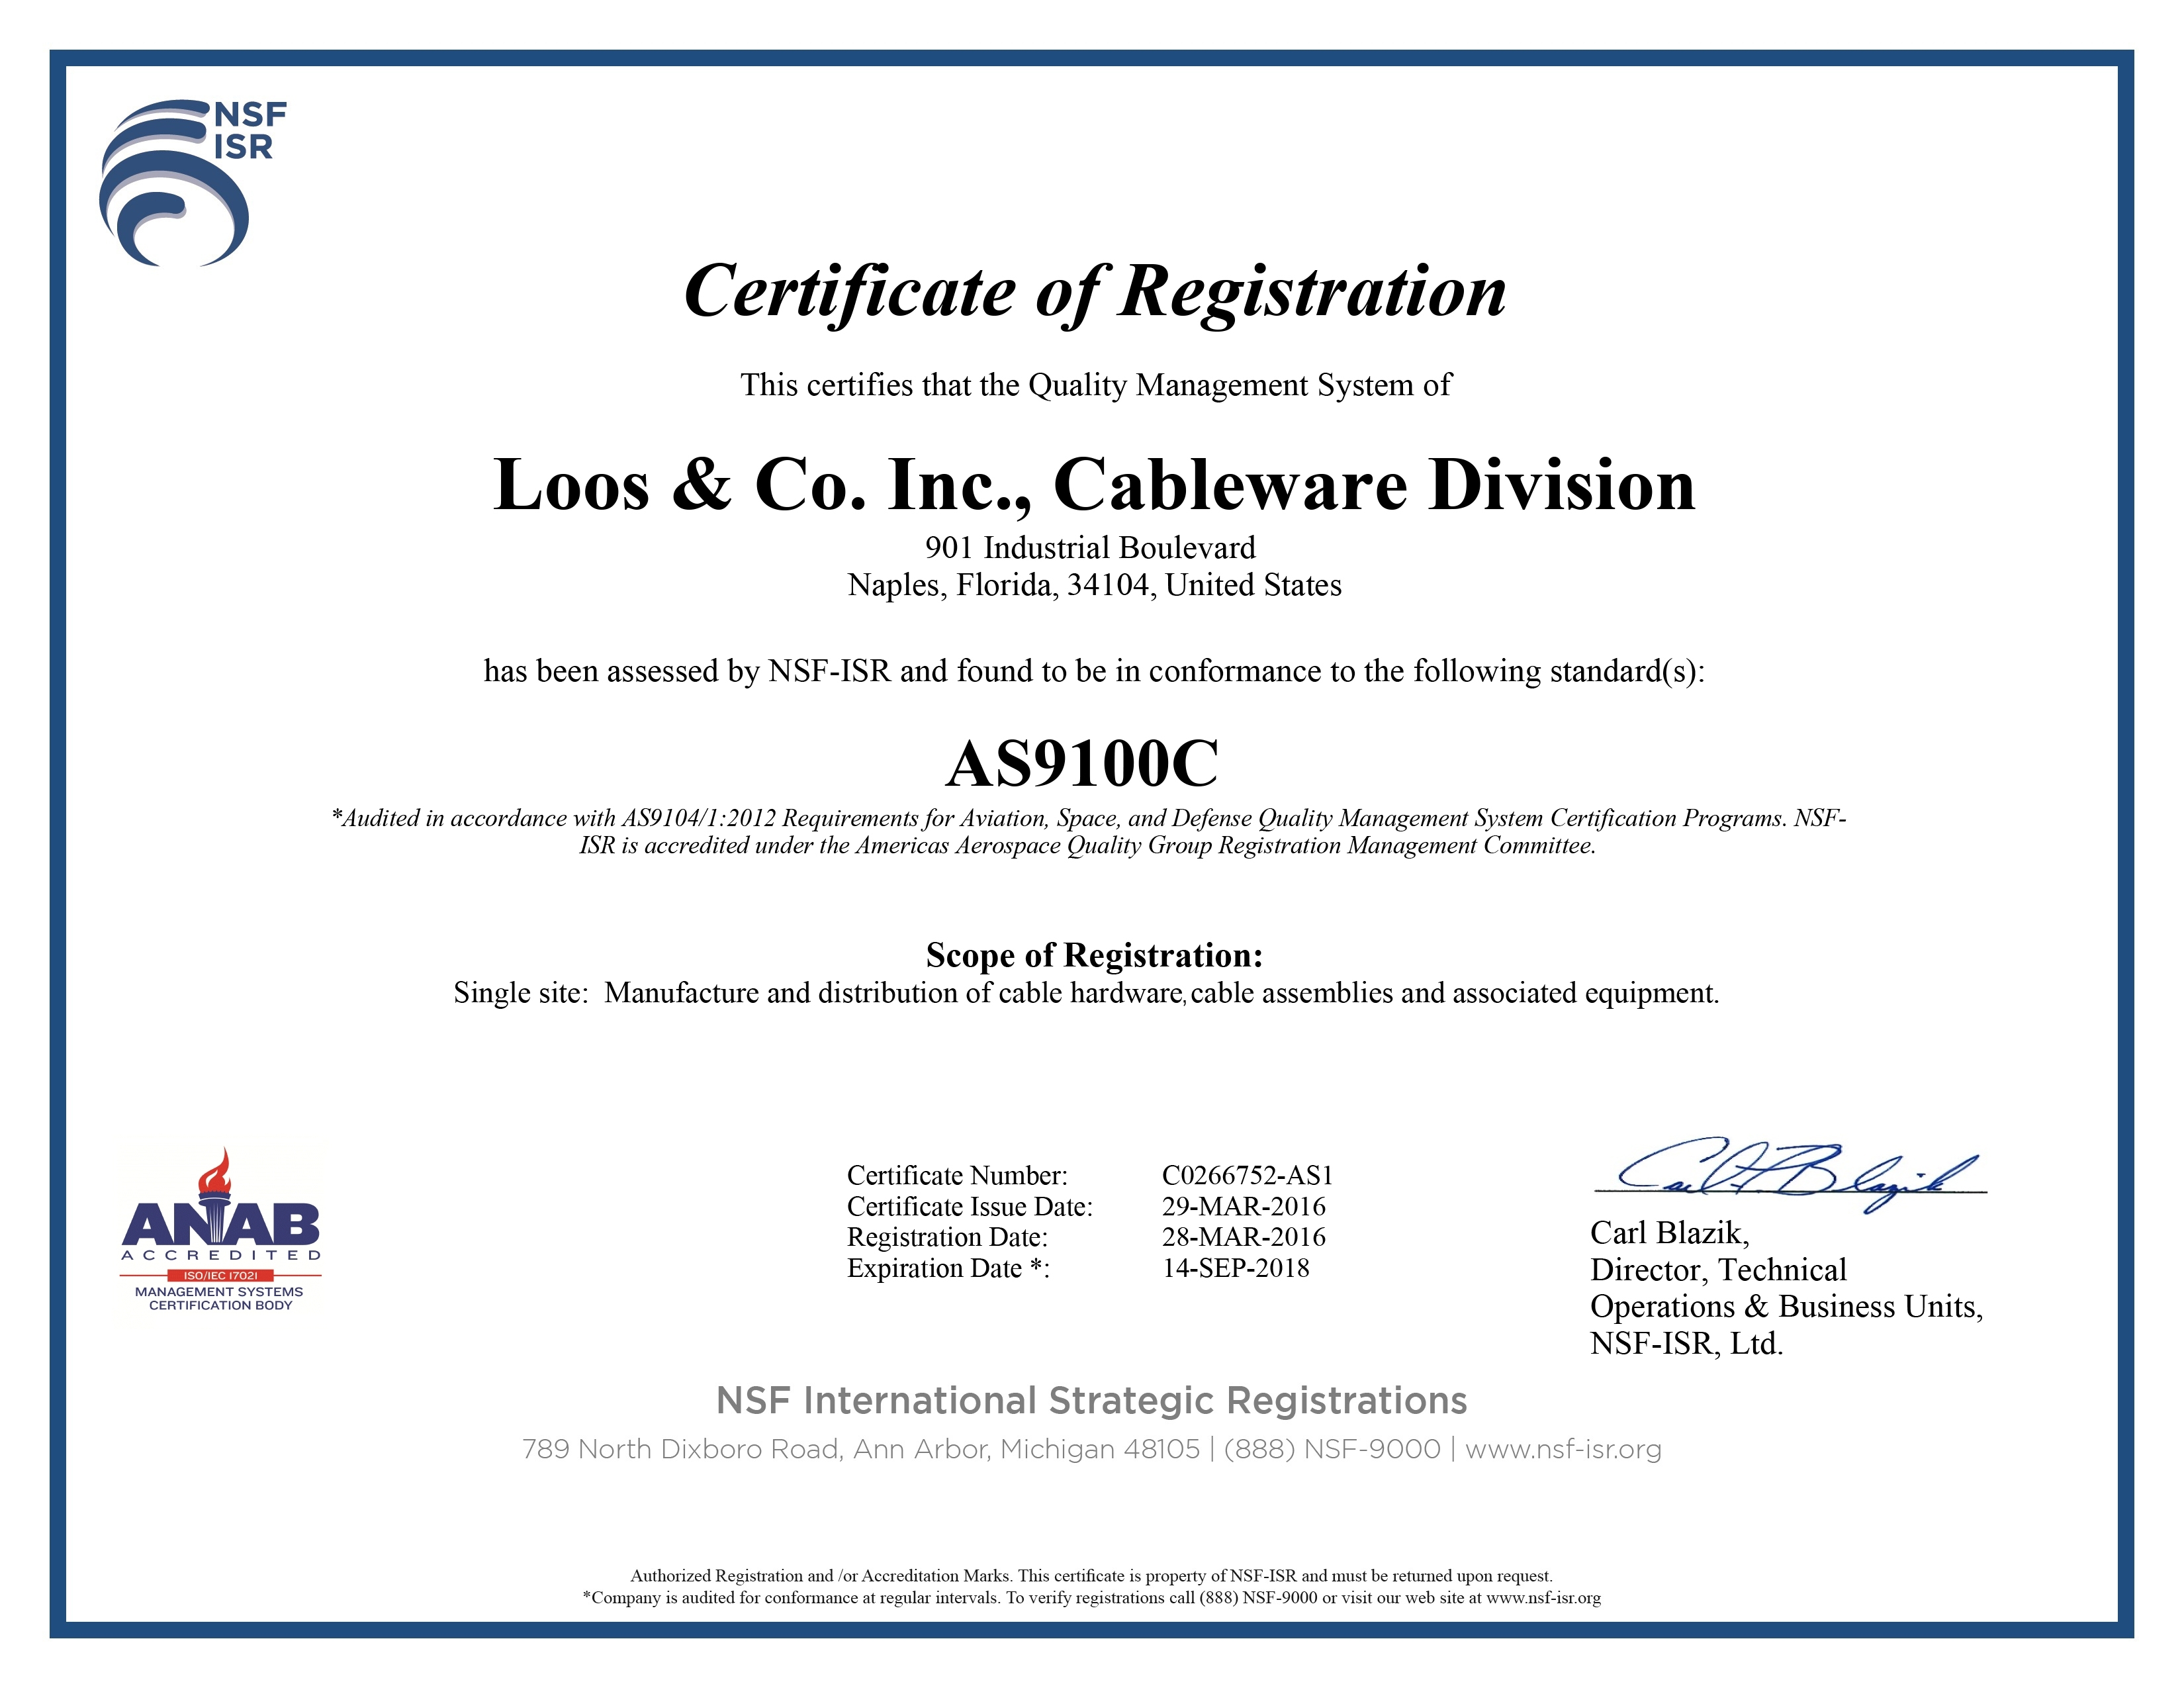 Company Certificate of Registration